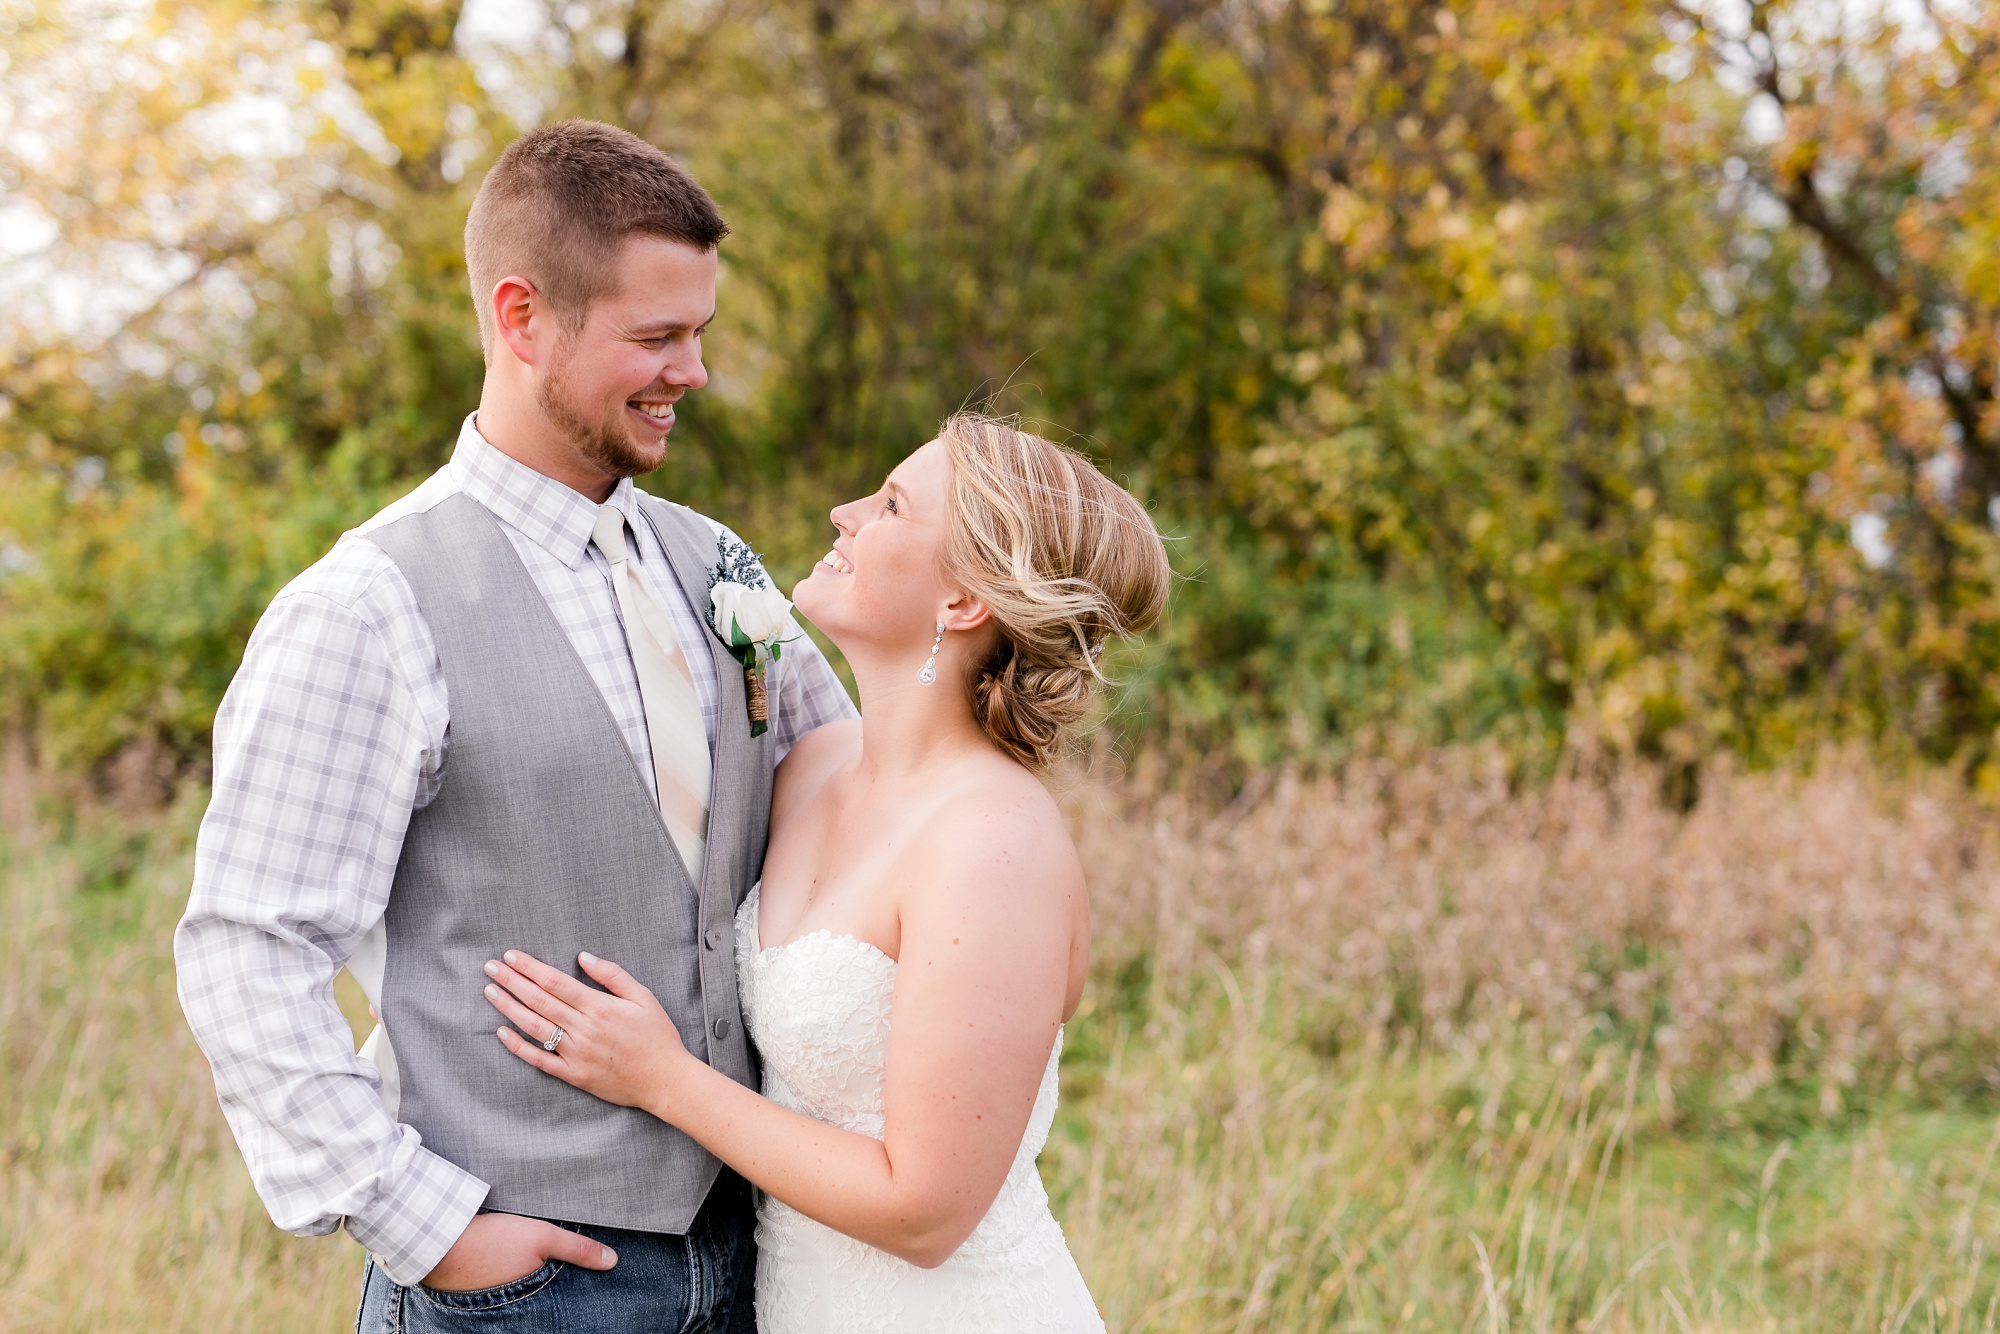 Fall, Country Styled Barn Wedding at the Barn at Dunvilla | Danielle & Jake | Photography by Amber Langerud PhotographyFall, Country Styled Barn Wedding at the Barn at Dunvilla | Danielle & Jake | Photography by Amber Langerud Photography